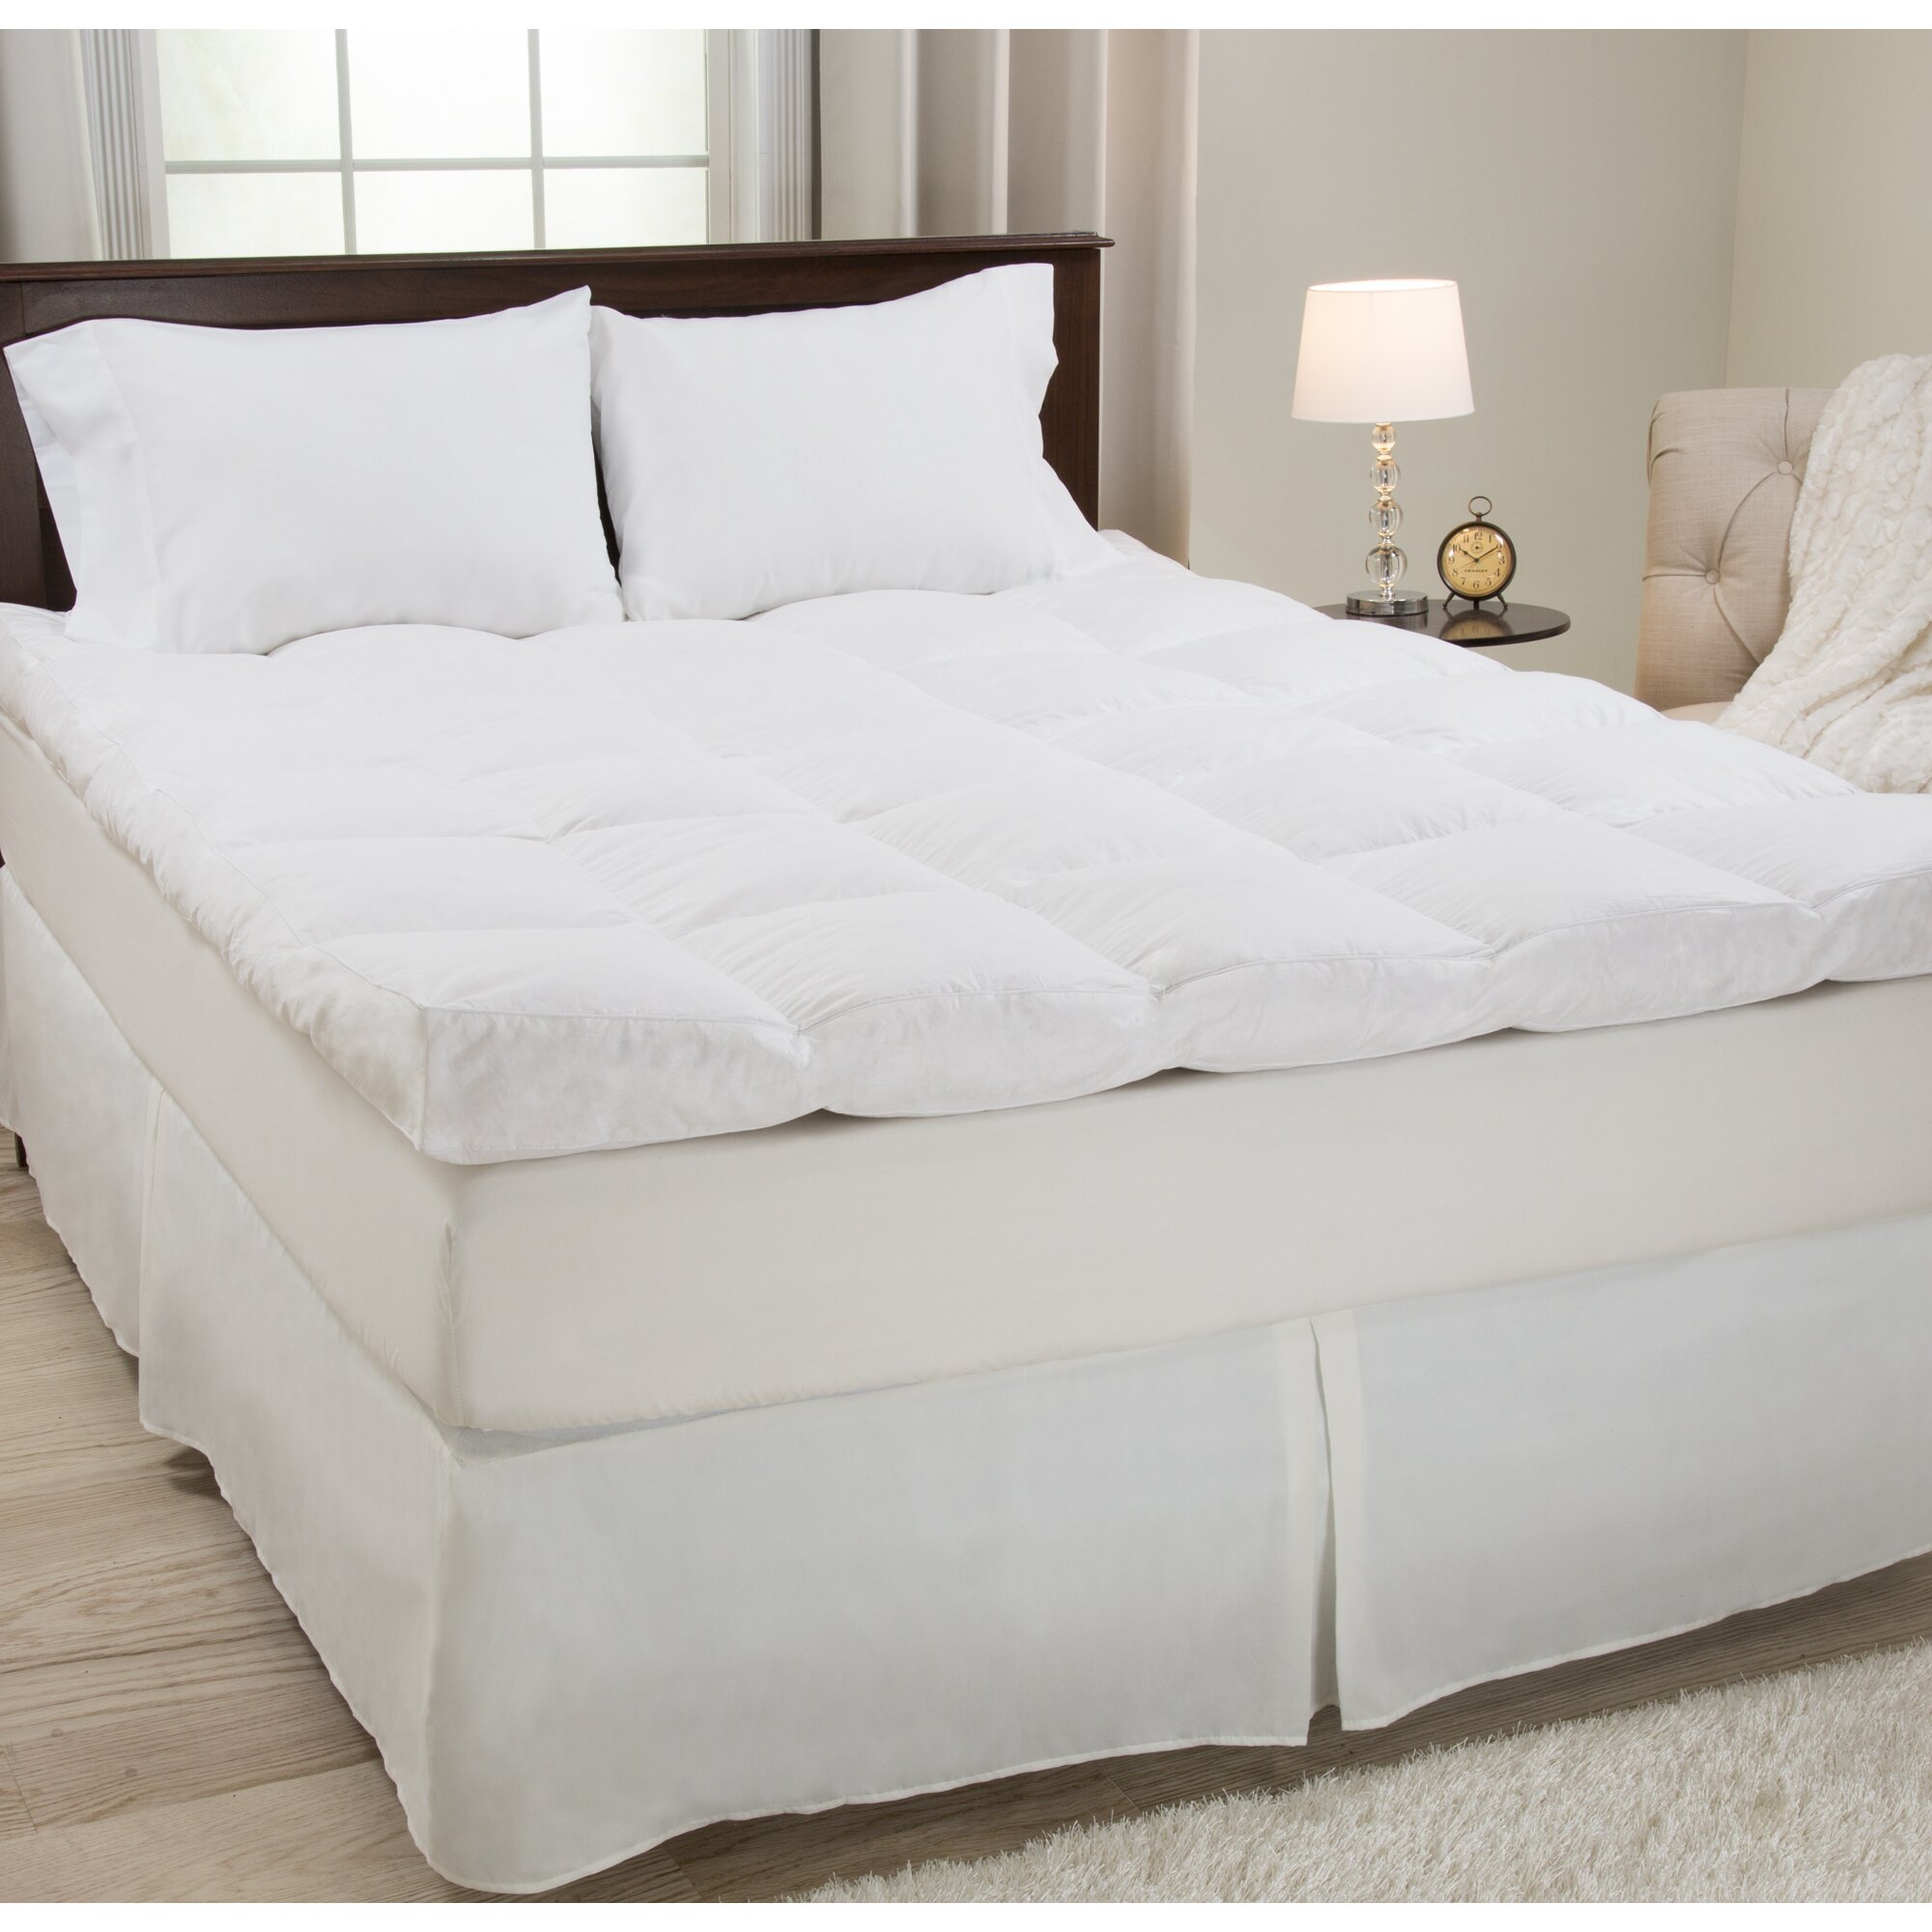 Feather Bed Mattress Topper